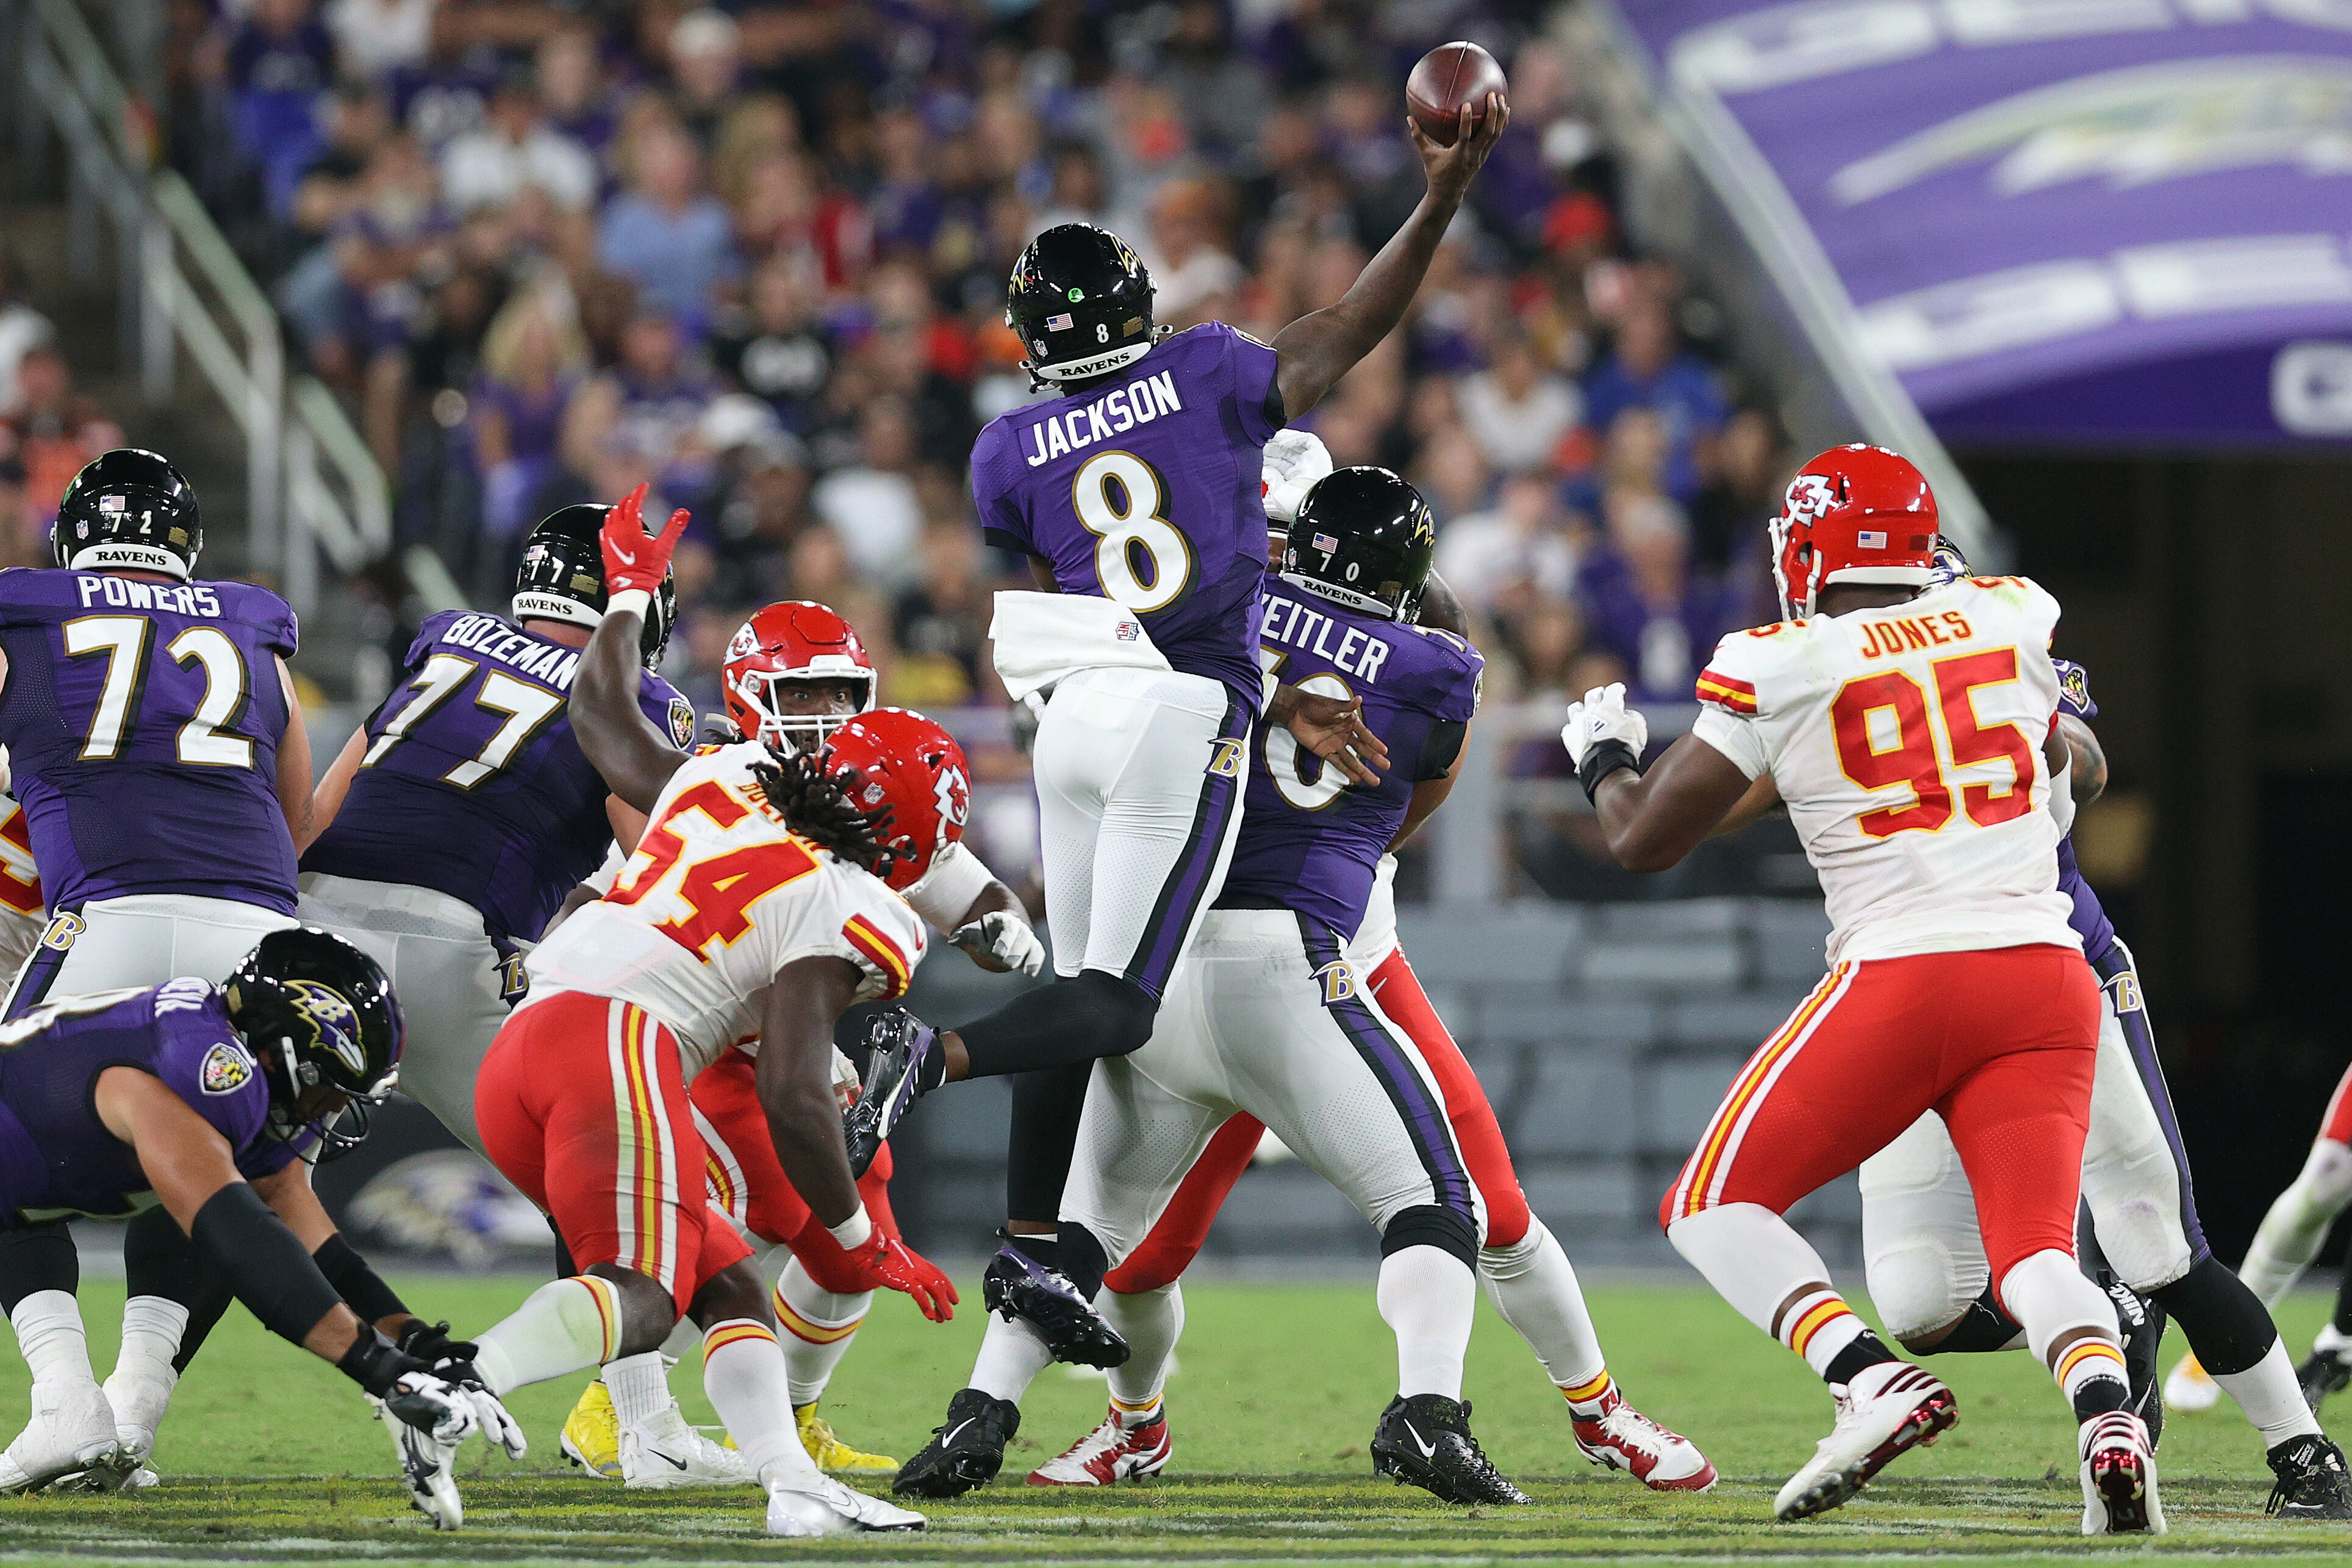 Lamar Jackson shows nerves of steel with gutsy, fourth-down call to beat Patrick Mahomes, Kansas City Chiefs